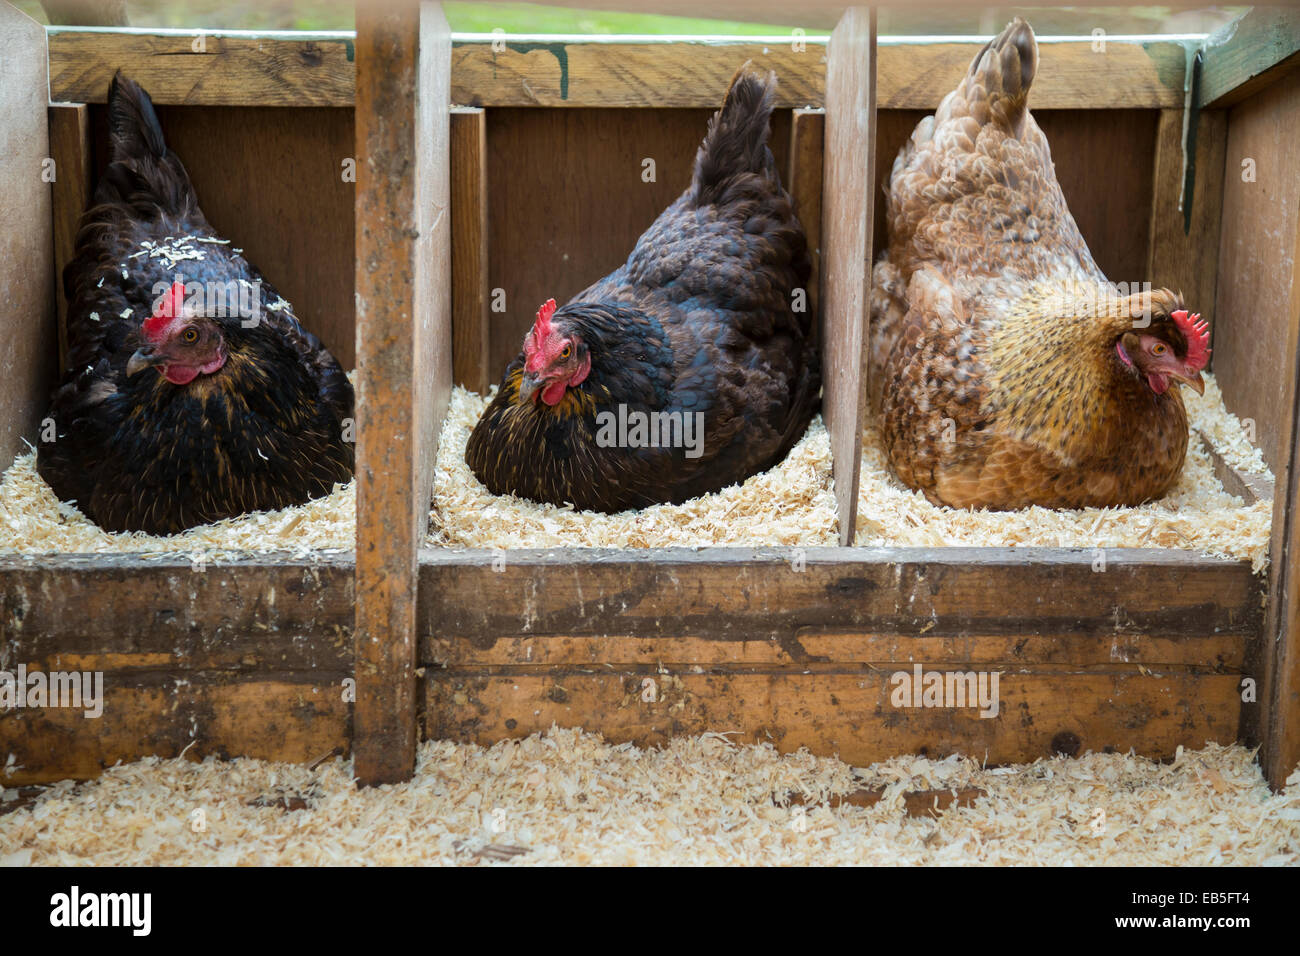 Chicken Sitting On Eggs: Hen Sitting On Eggs Stock Photos & Hen Sitting On Eggs